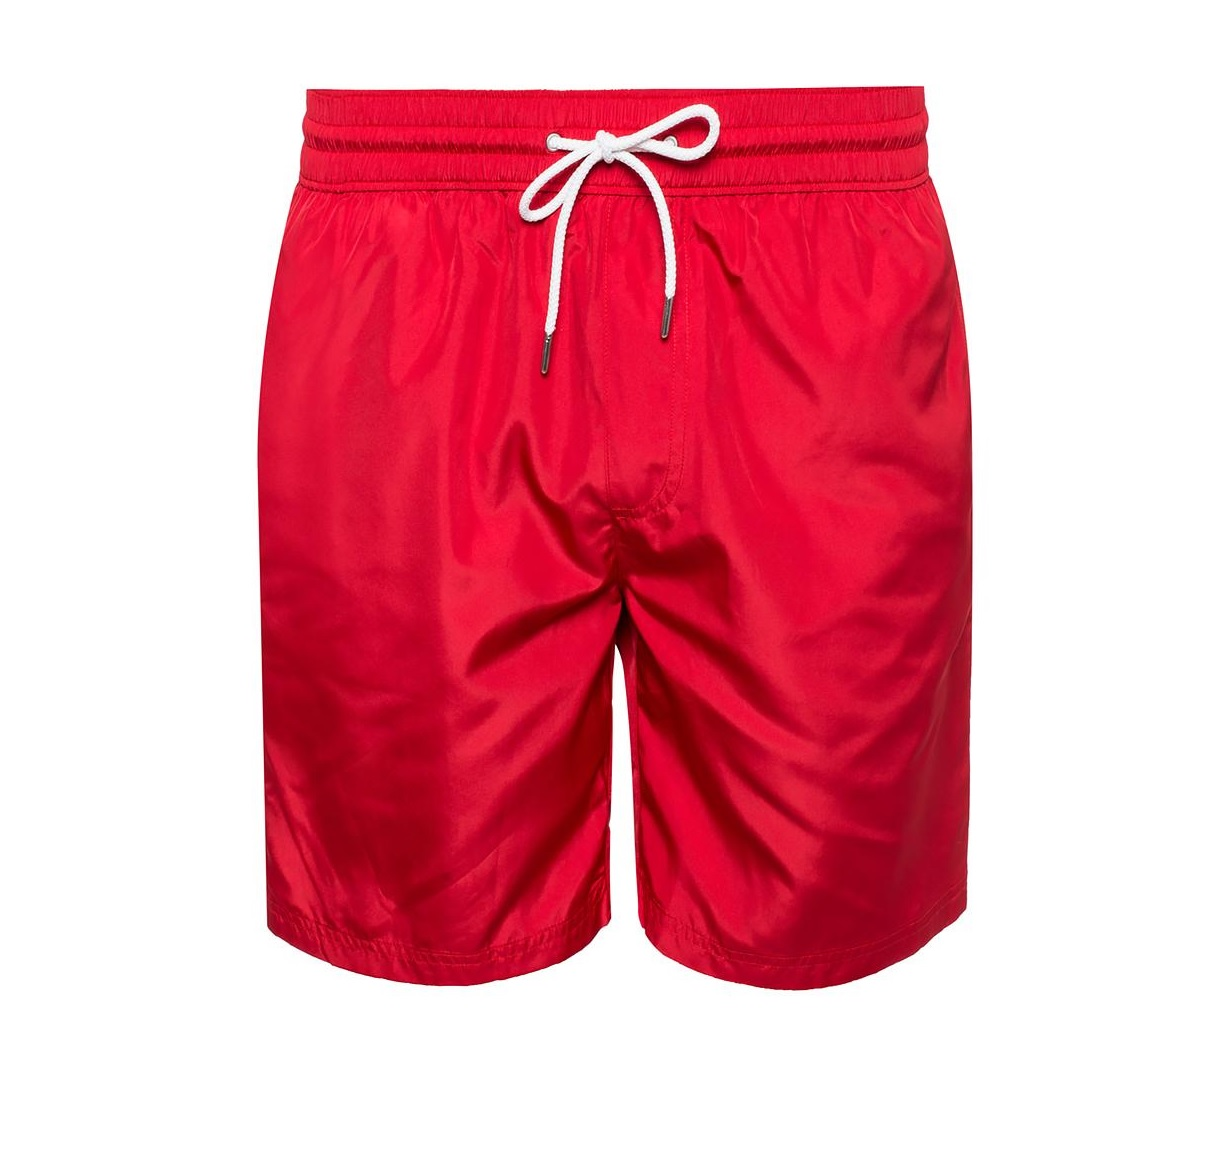 Burberry Mens Logo Printed Swimming Shorts In Blue,red,white